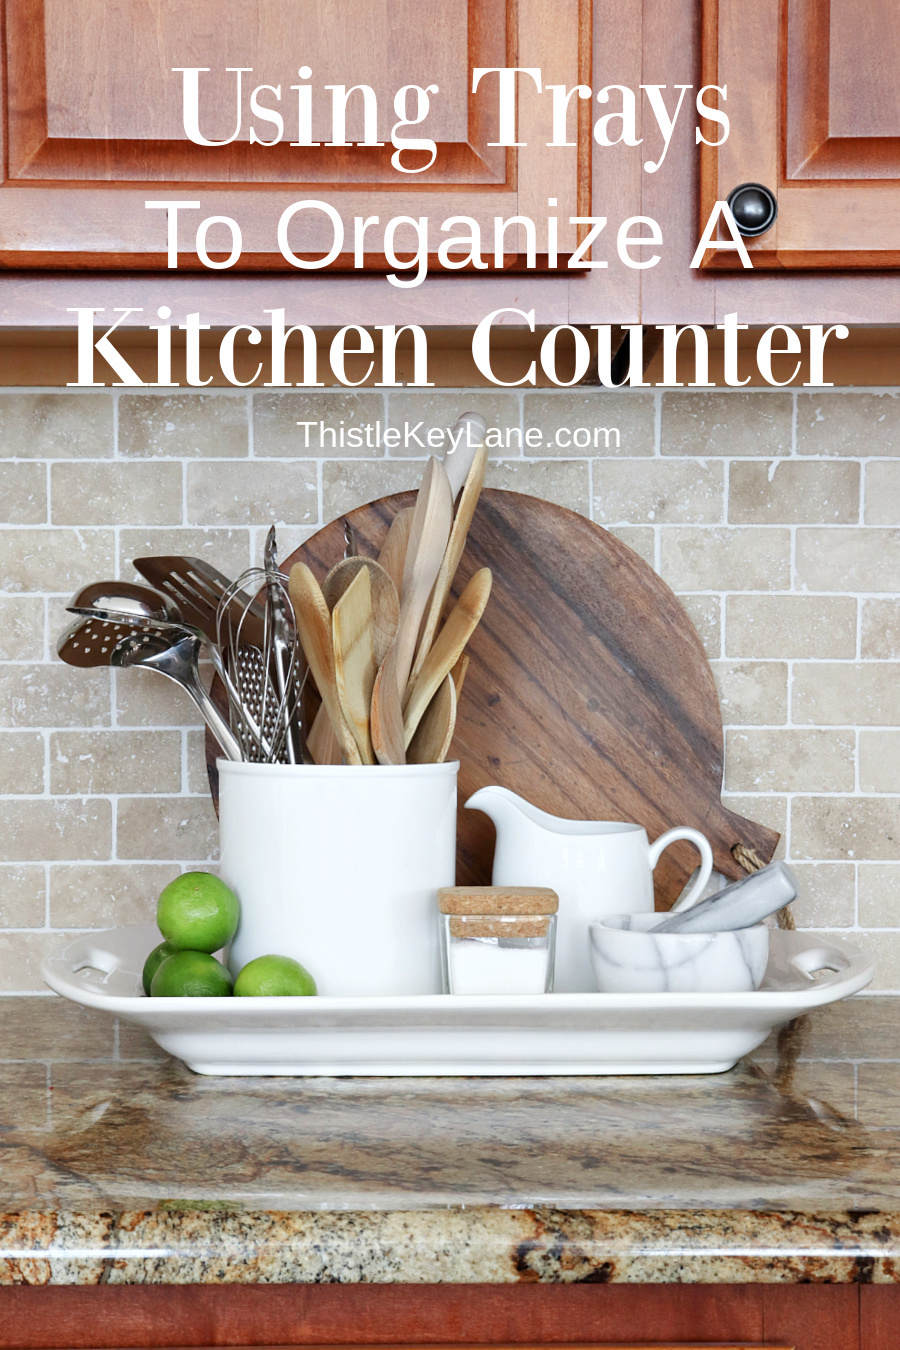 Using Trays To Control Kitchen Clutter.